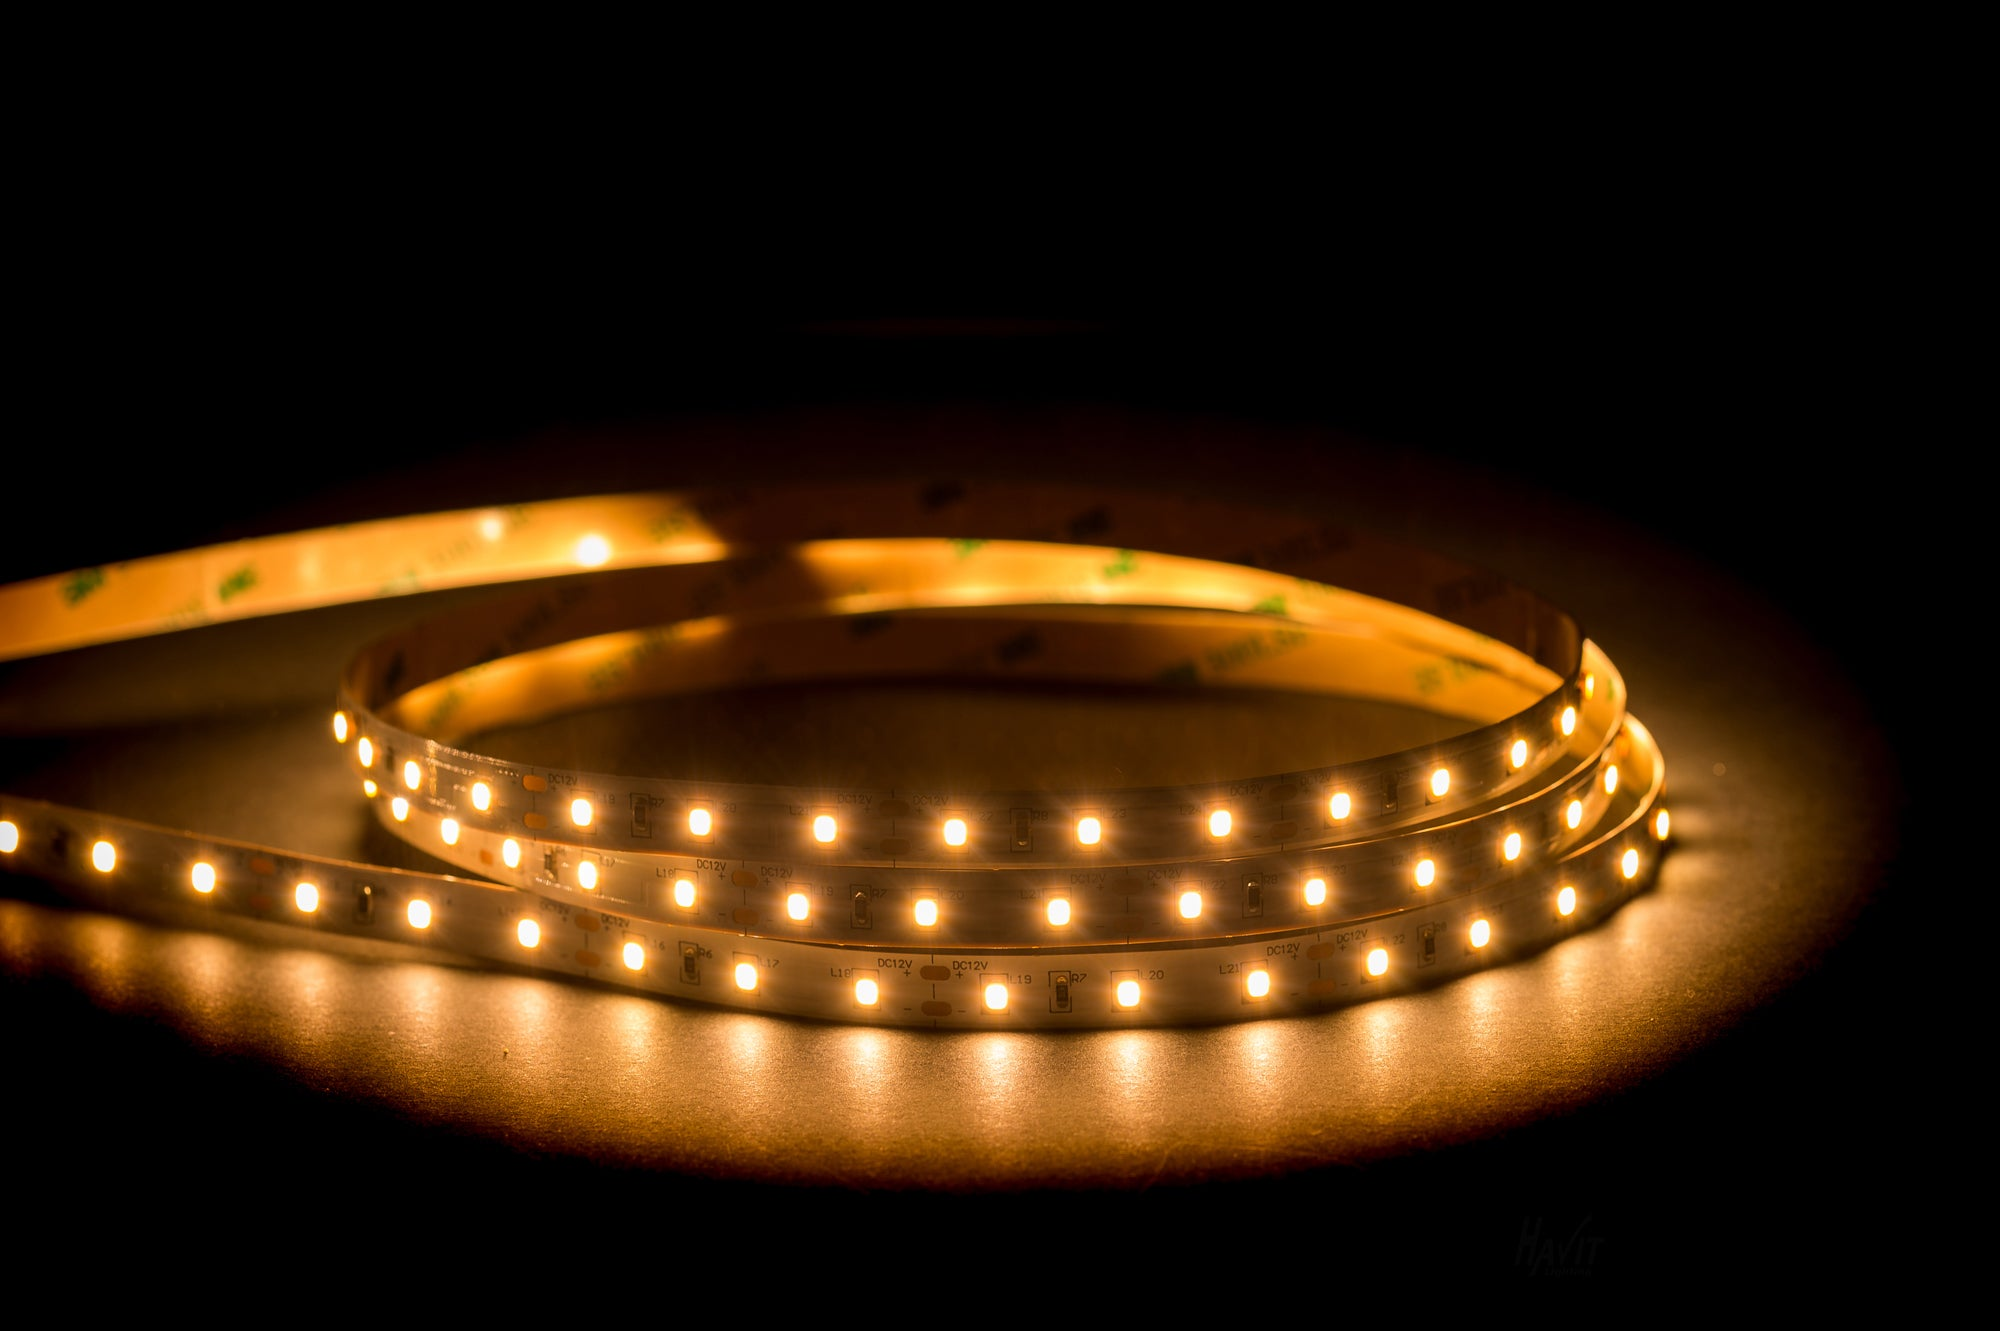 HV9783-IP20-60-3K - 14.4w IP20 LED Strip 3000k